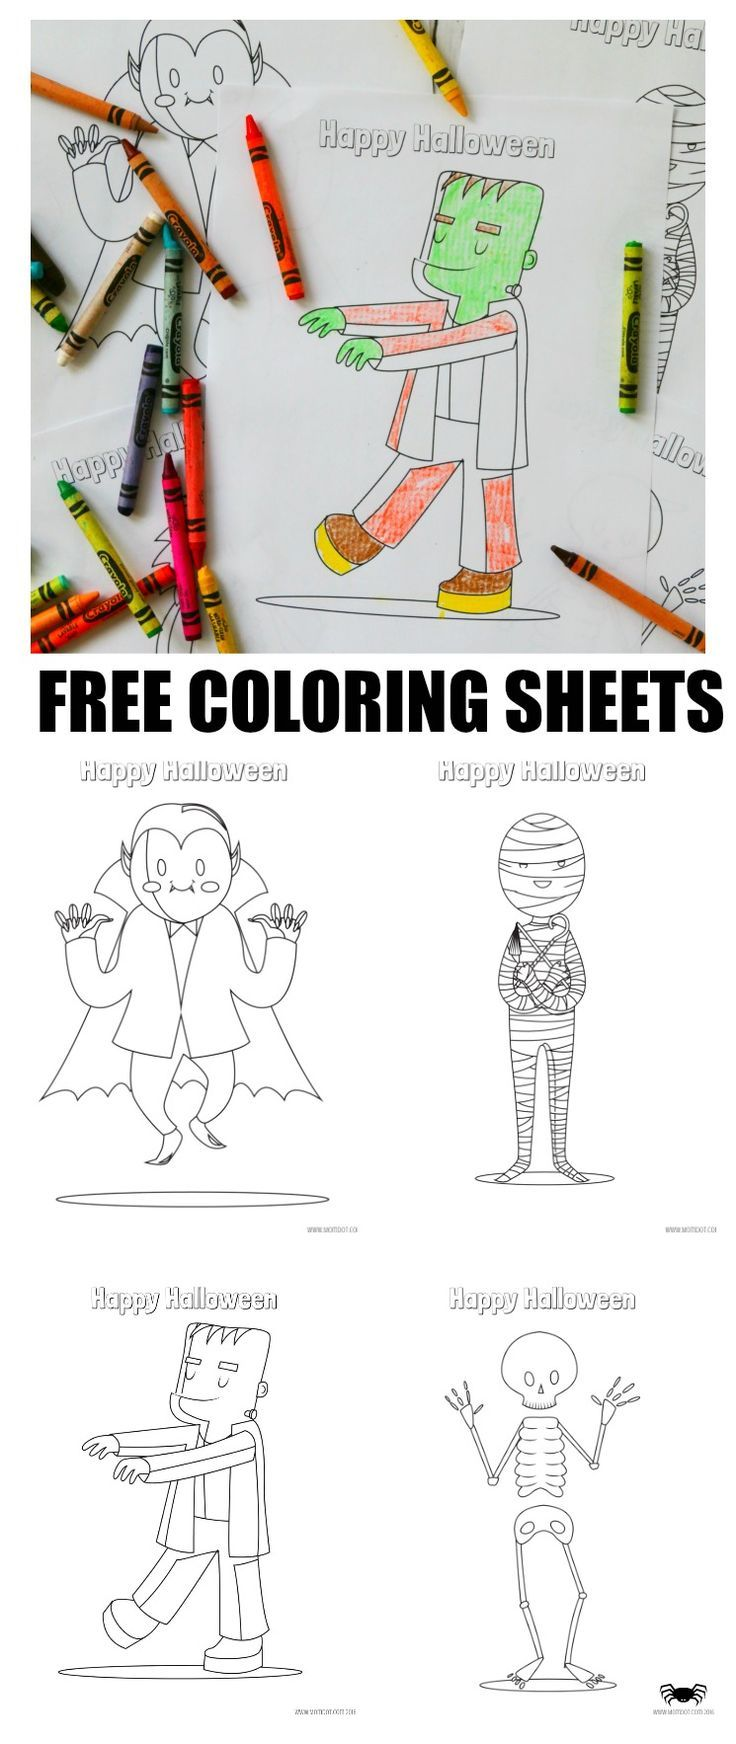 Free Halloween Coloring Sheets, download of 6 sheet Halloween set for coloring FREE! Great for kids, classrooms, at home school - Free Printable